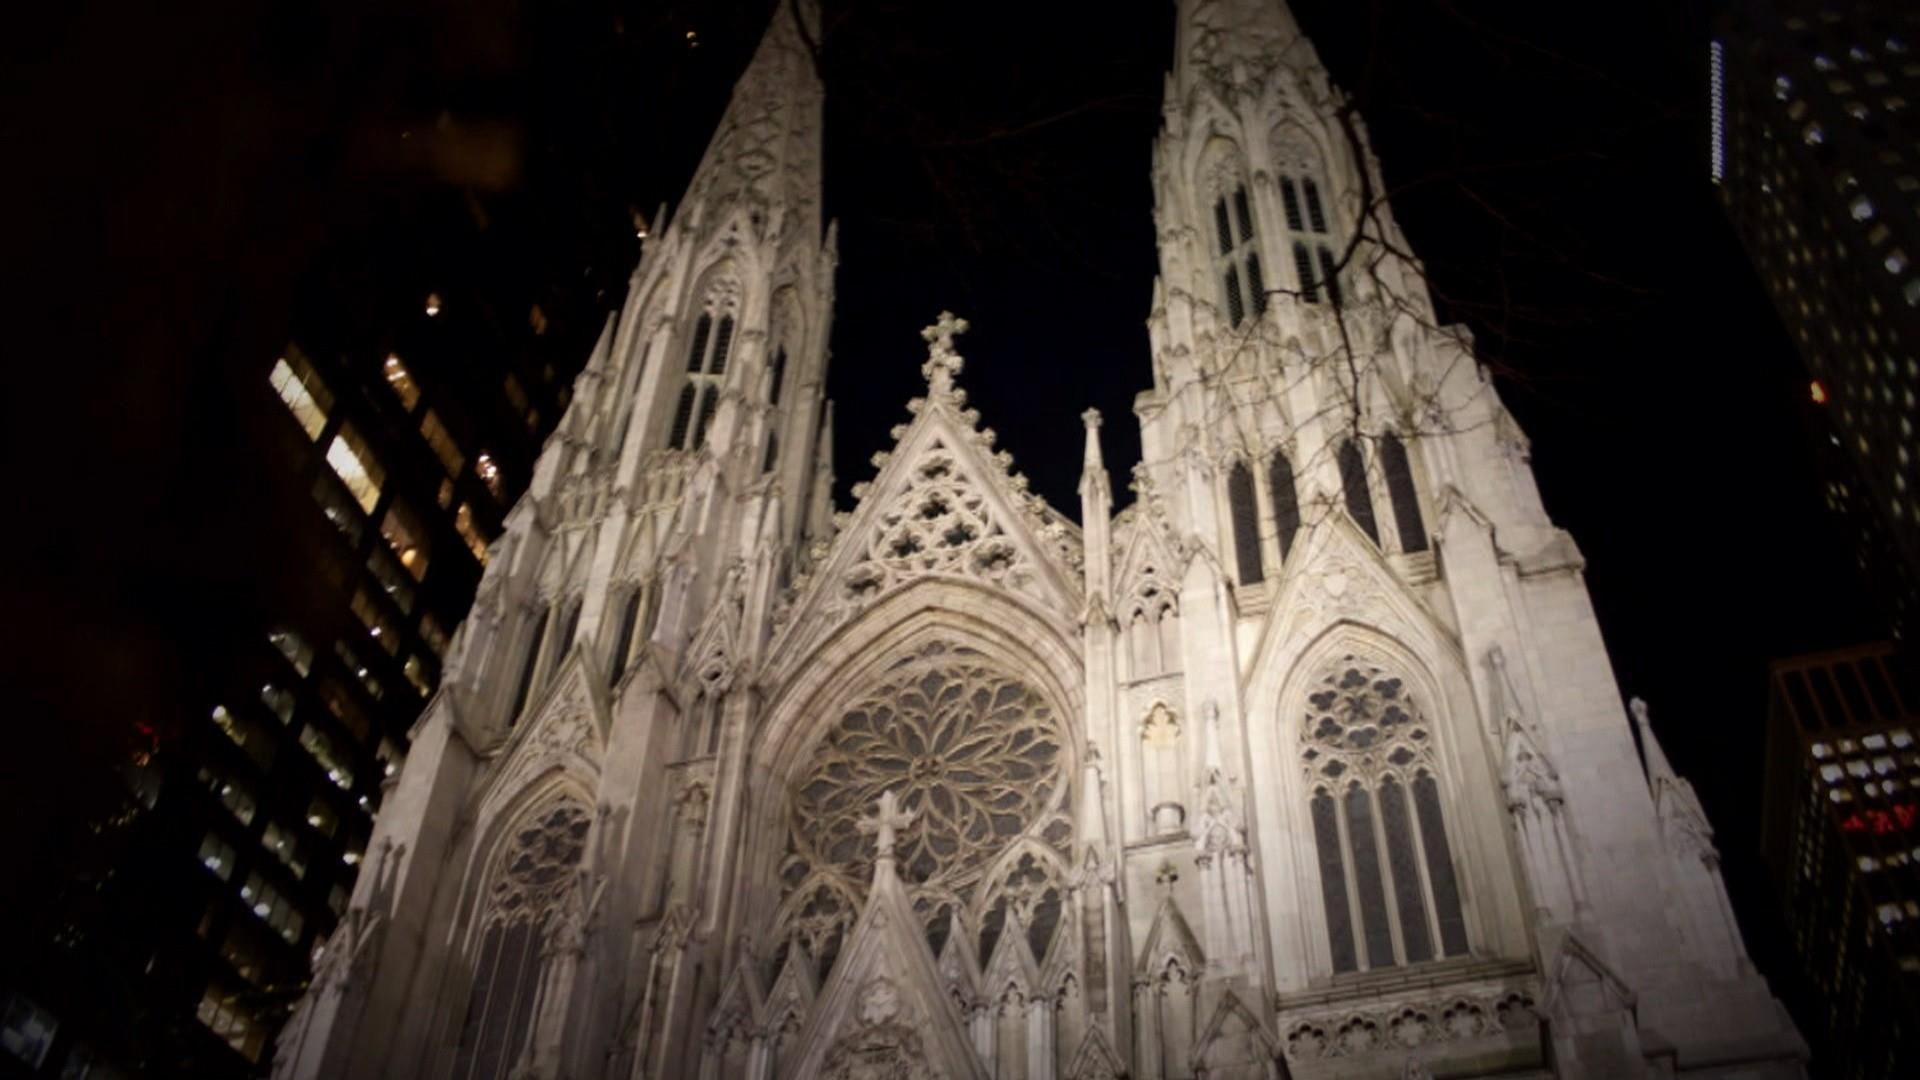 Man with gas cans arrested at St. Patrick's Cathedral in New York